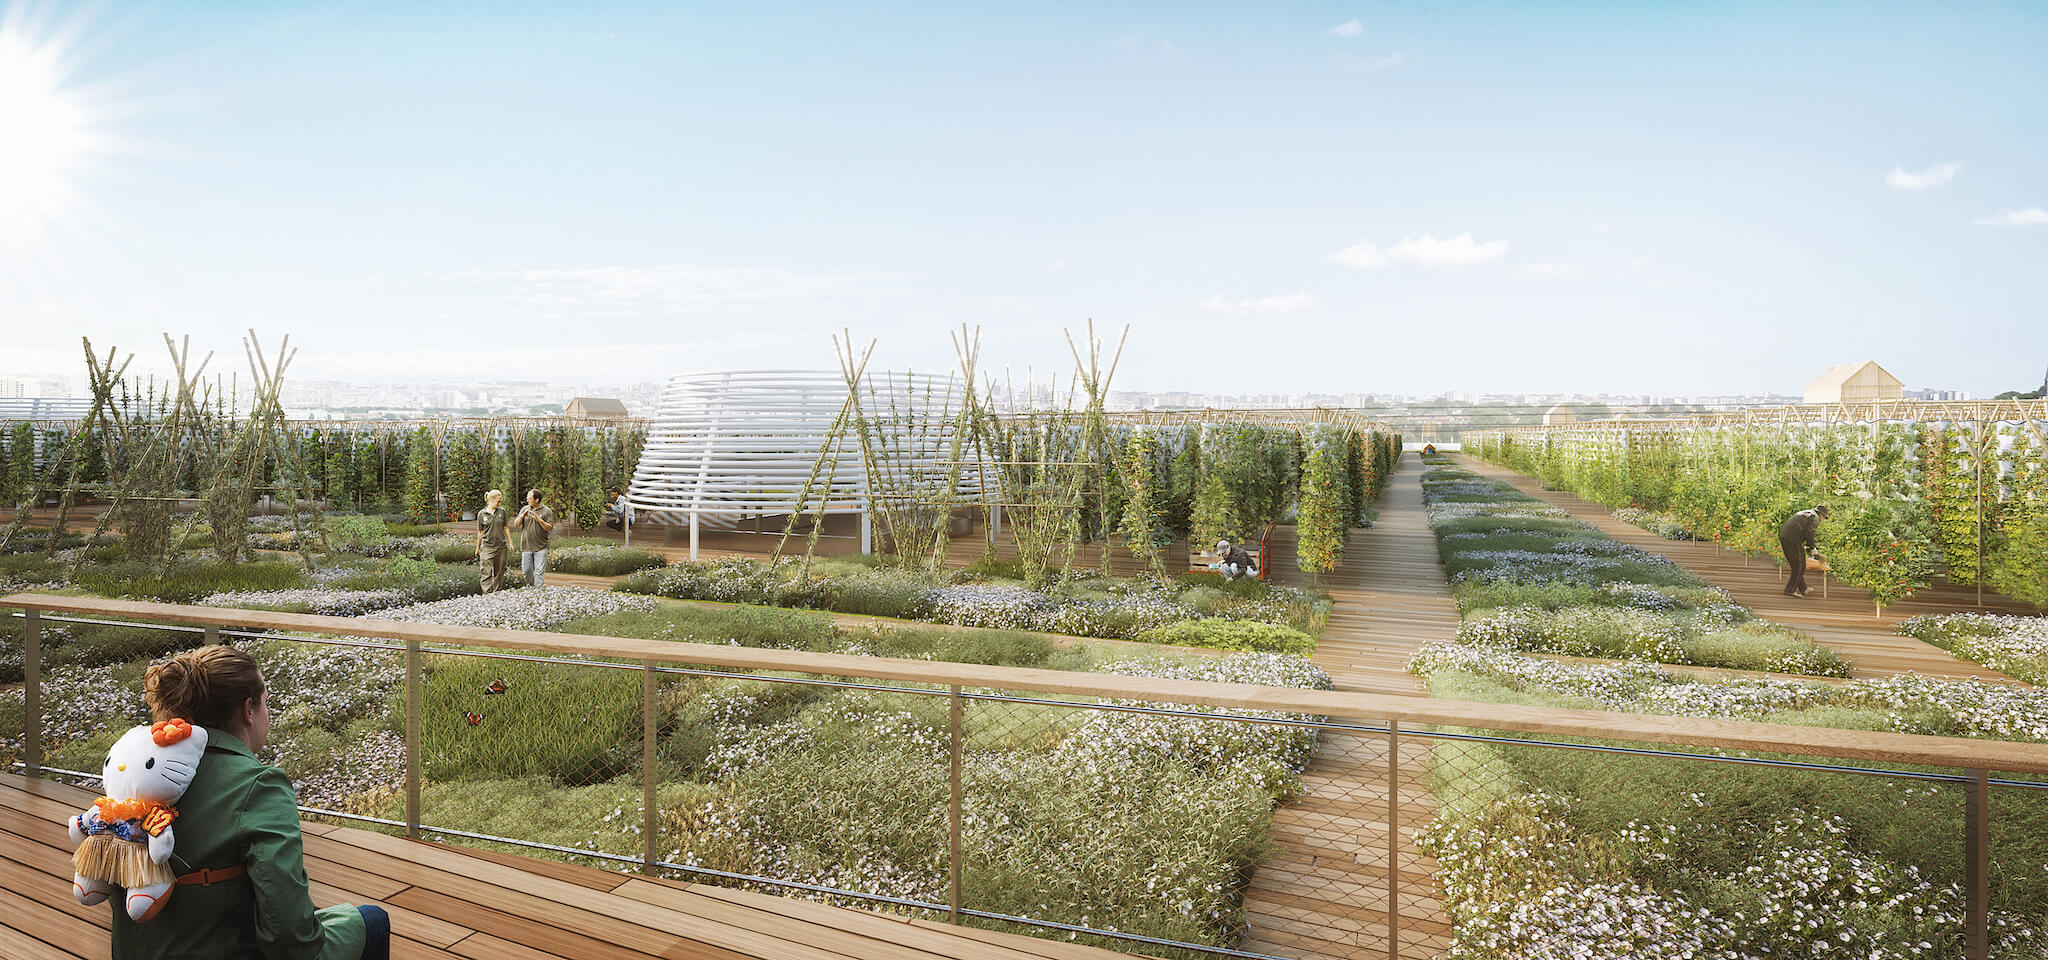 Blue skies and sunshine over Agripolis, Europe's largest rooftop green space located at the Porte de Versailles in Paris.